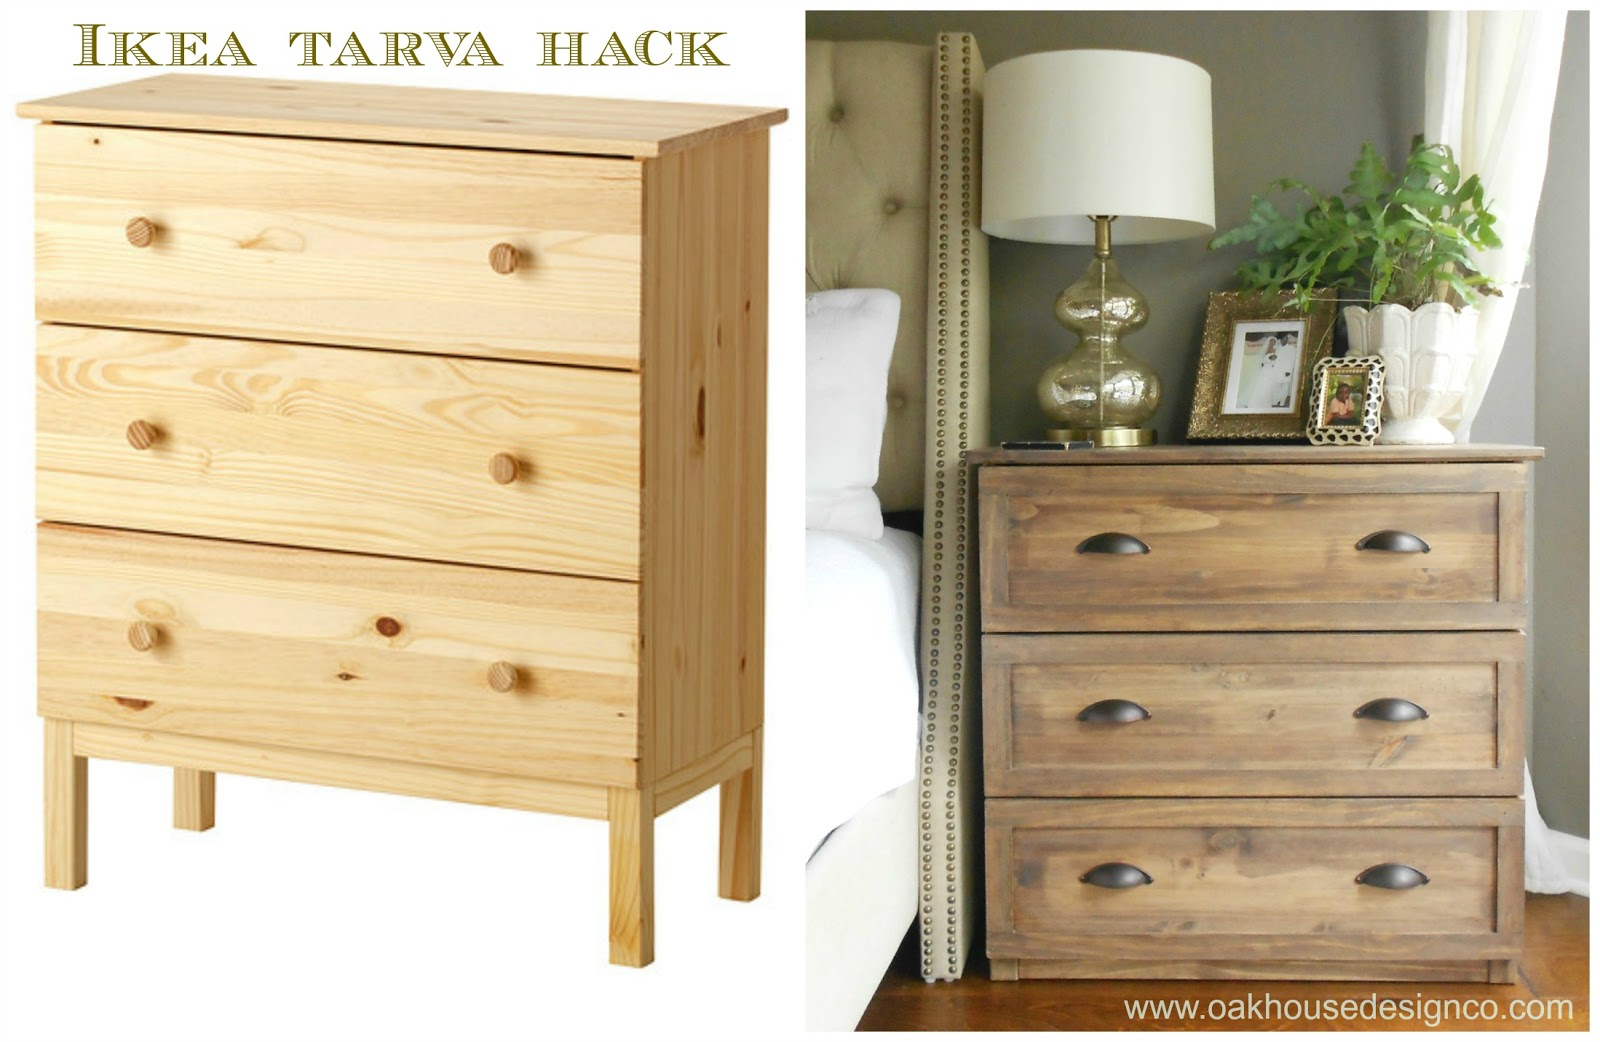 Ikea Unfinished Dresser The New Nightstands-an Ikea Tarva Hack - Oak House Design Co.